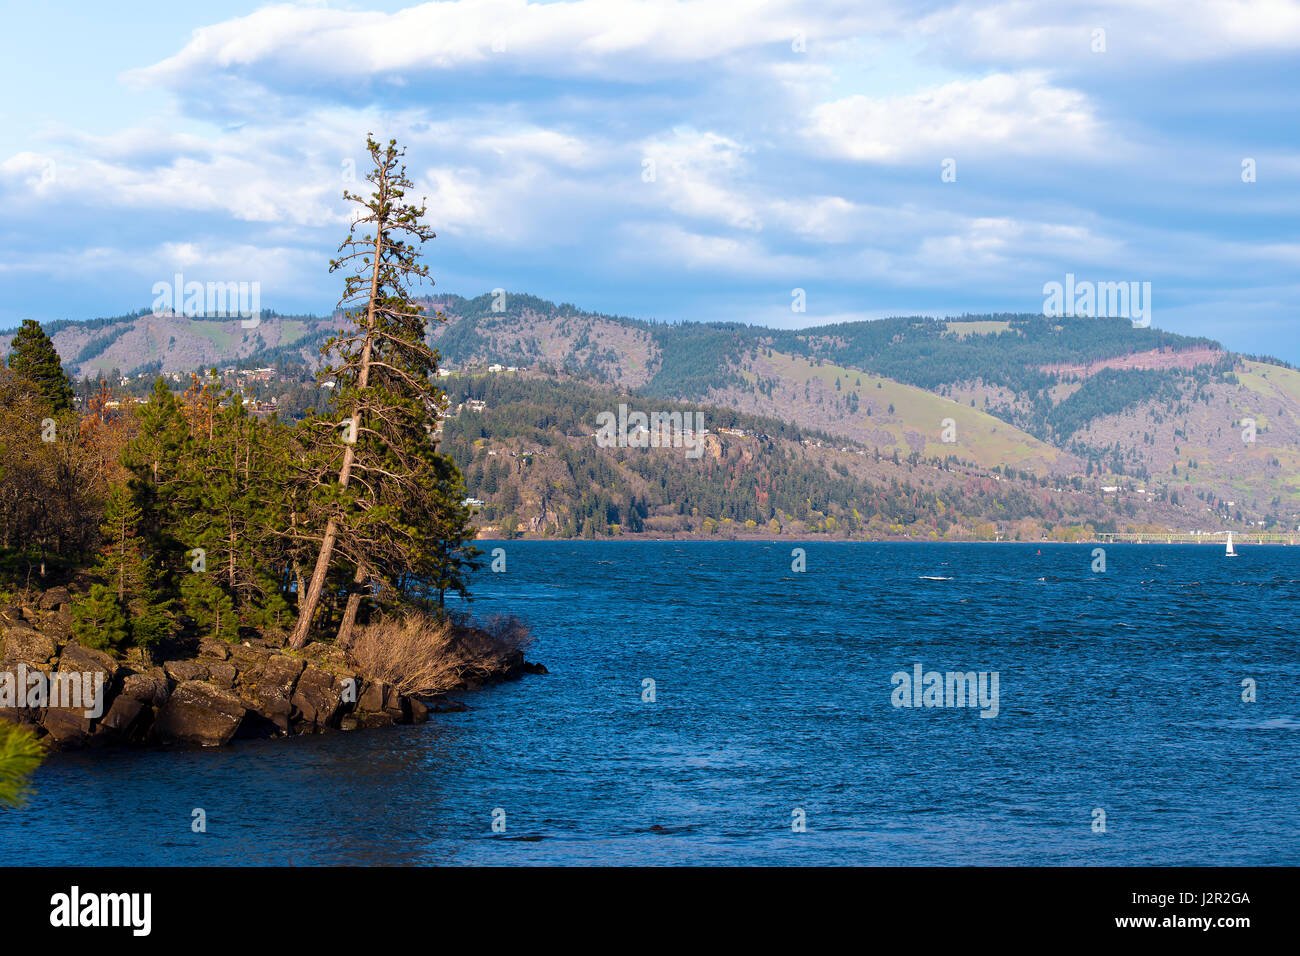 Island of evergreen trees growing on rocks on the shore of the Columbia River, in the sun on the background of river - Stock Image